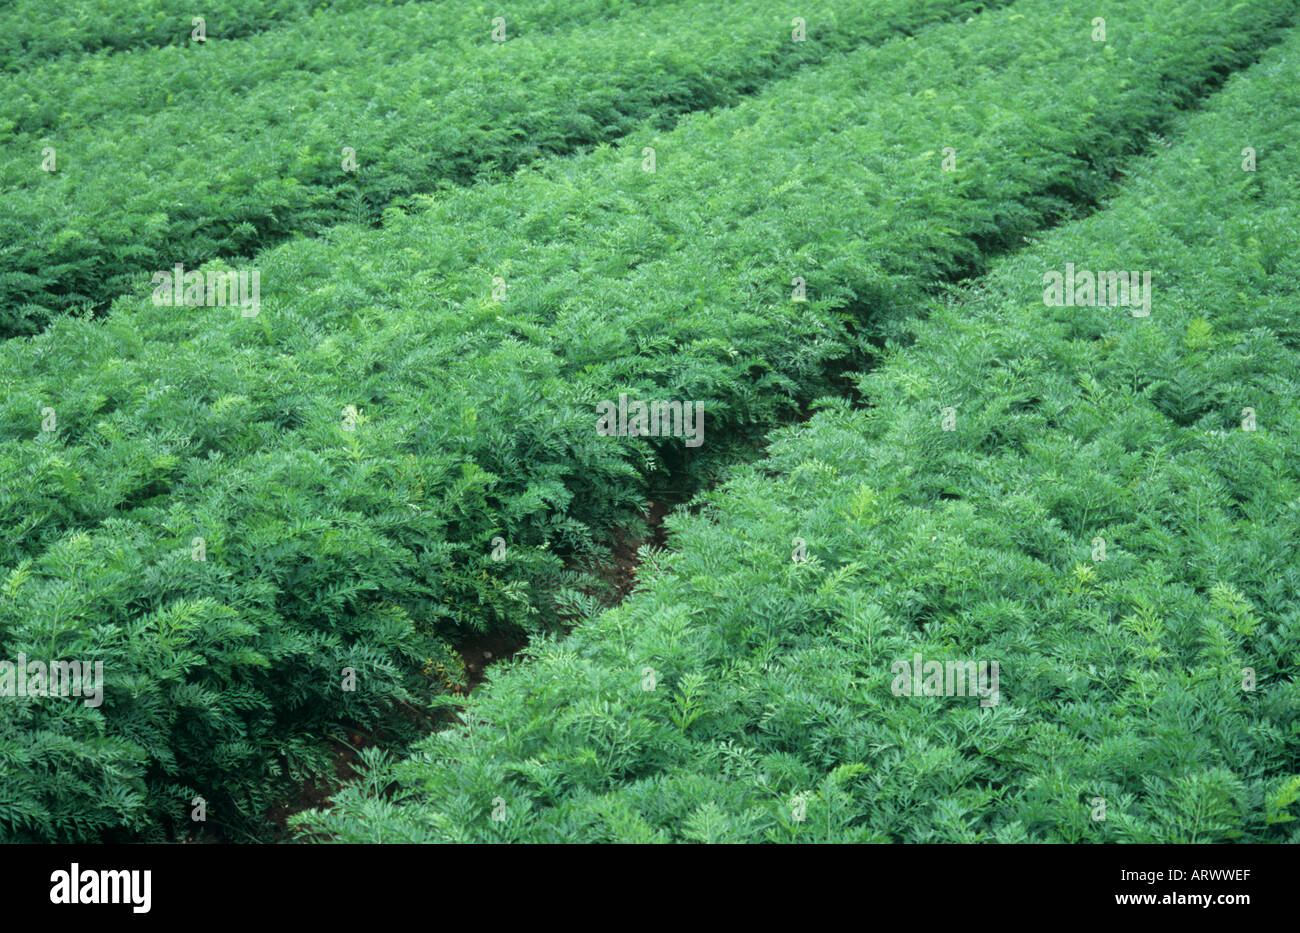 Part of a field containing rows of healthy maturing carrot or Daucus carota plants with tractor tramlines visible Stock Photo